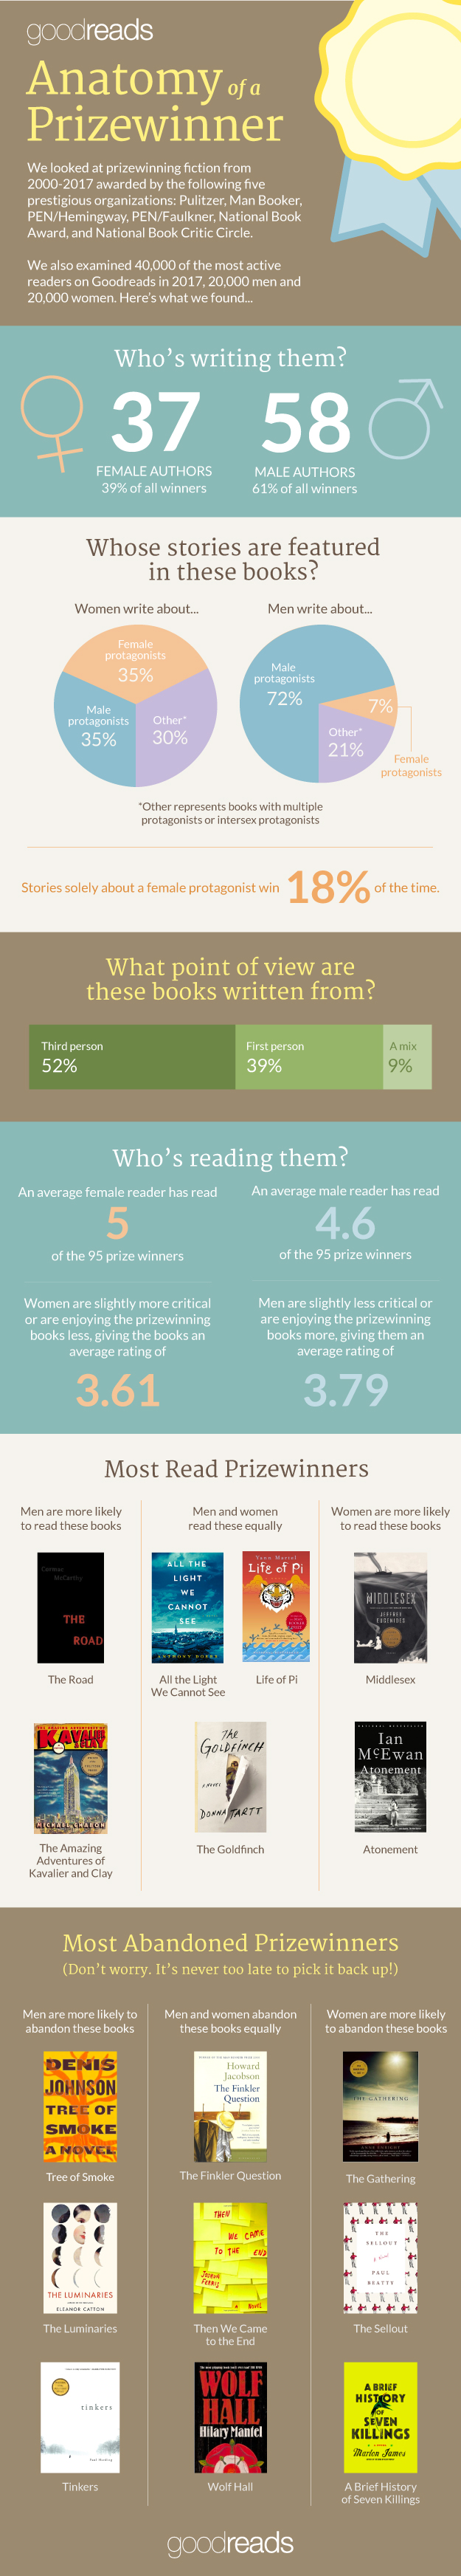 What Makes a Prize-Winning Book: The Hidden Story - Infographic